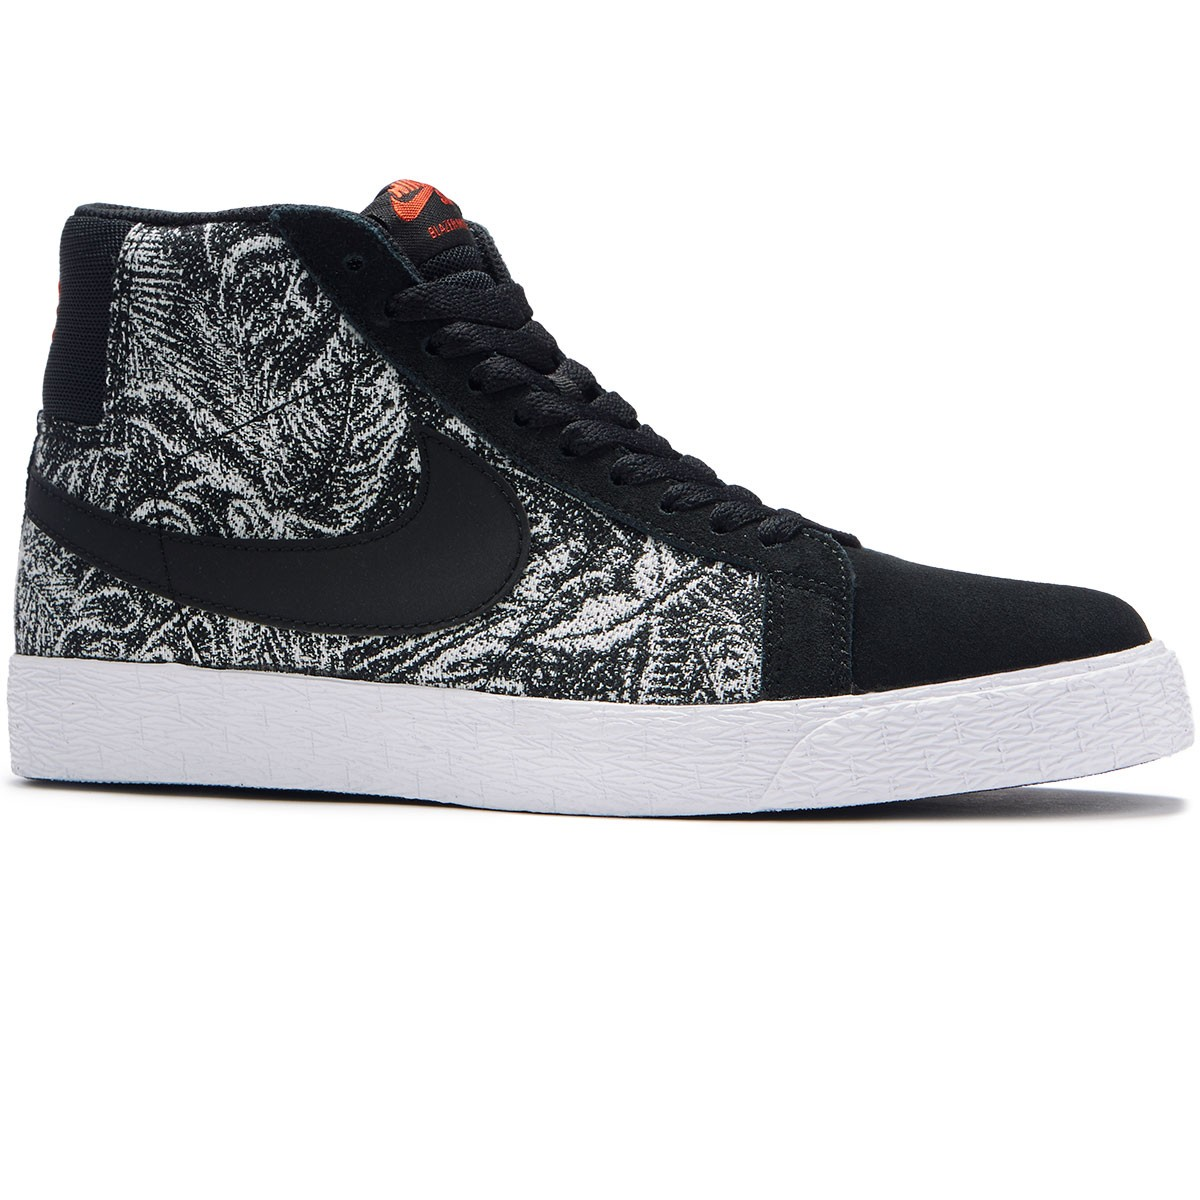 nike sb air zoom blazer low shoes. Black Bedroom Furniture Sets. Home Design Ideas